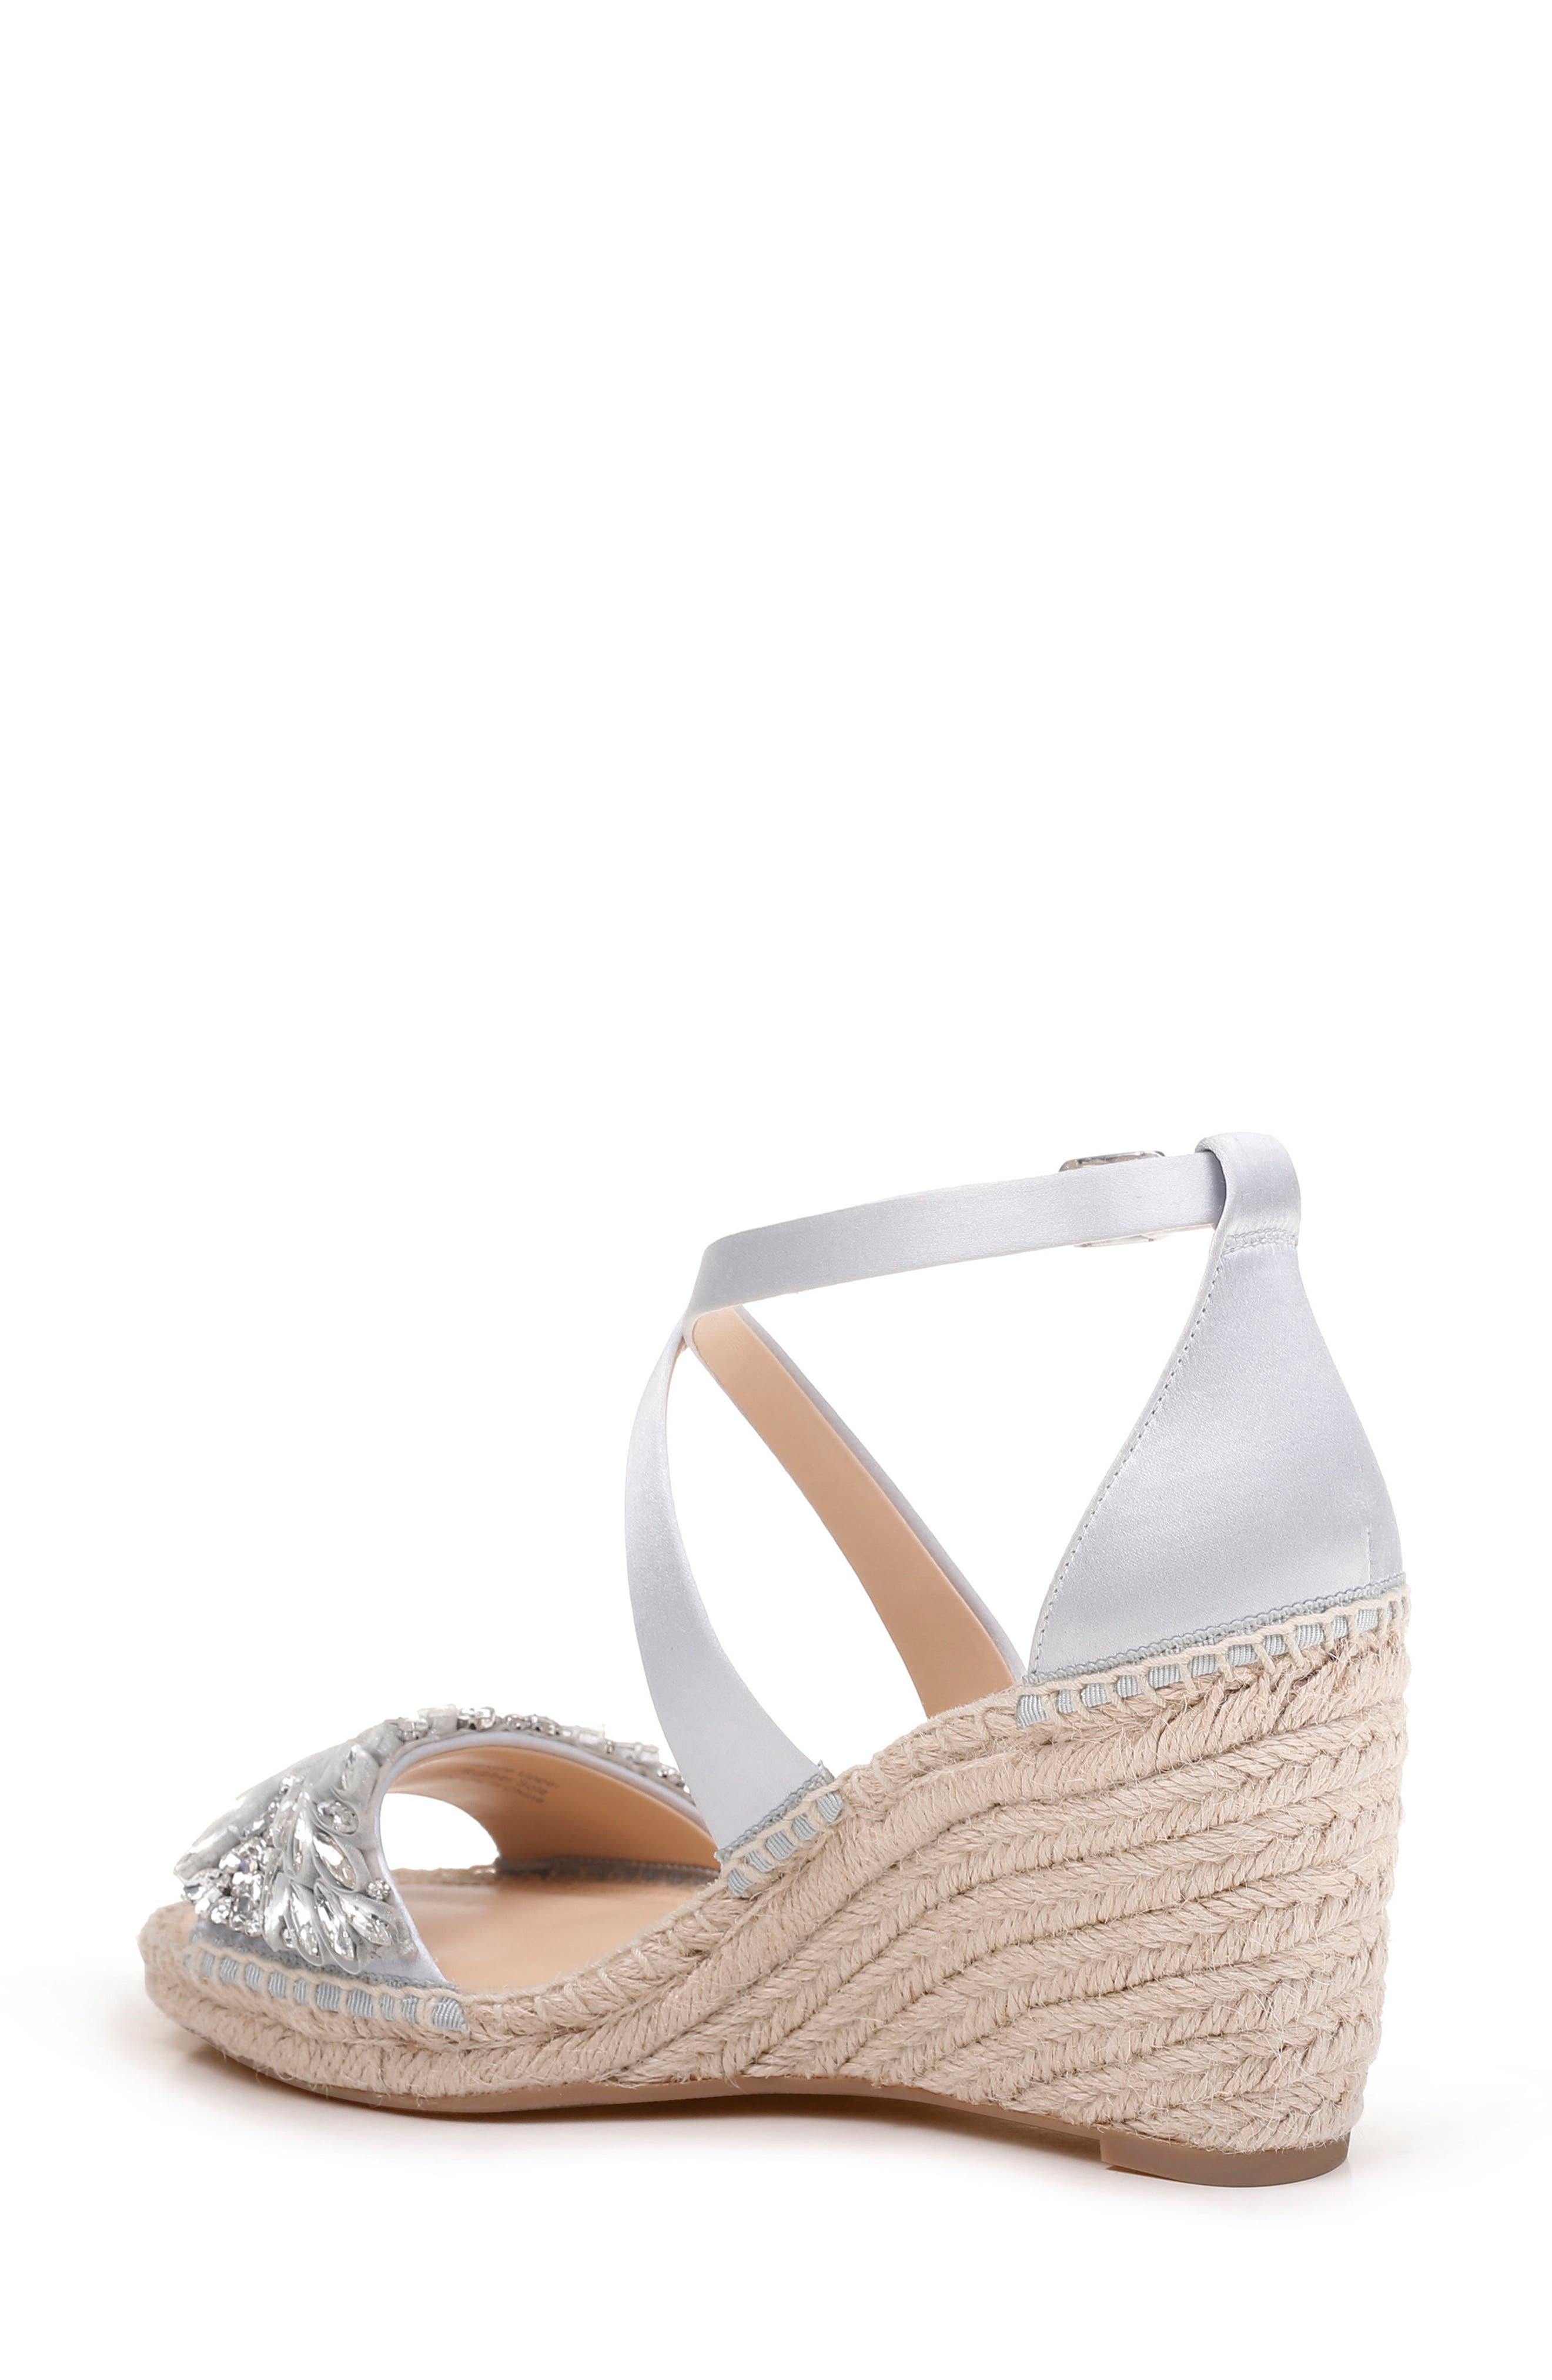 Scarlette Espadrille Wedge,                             Alternate thumbnail 2, color,                             045